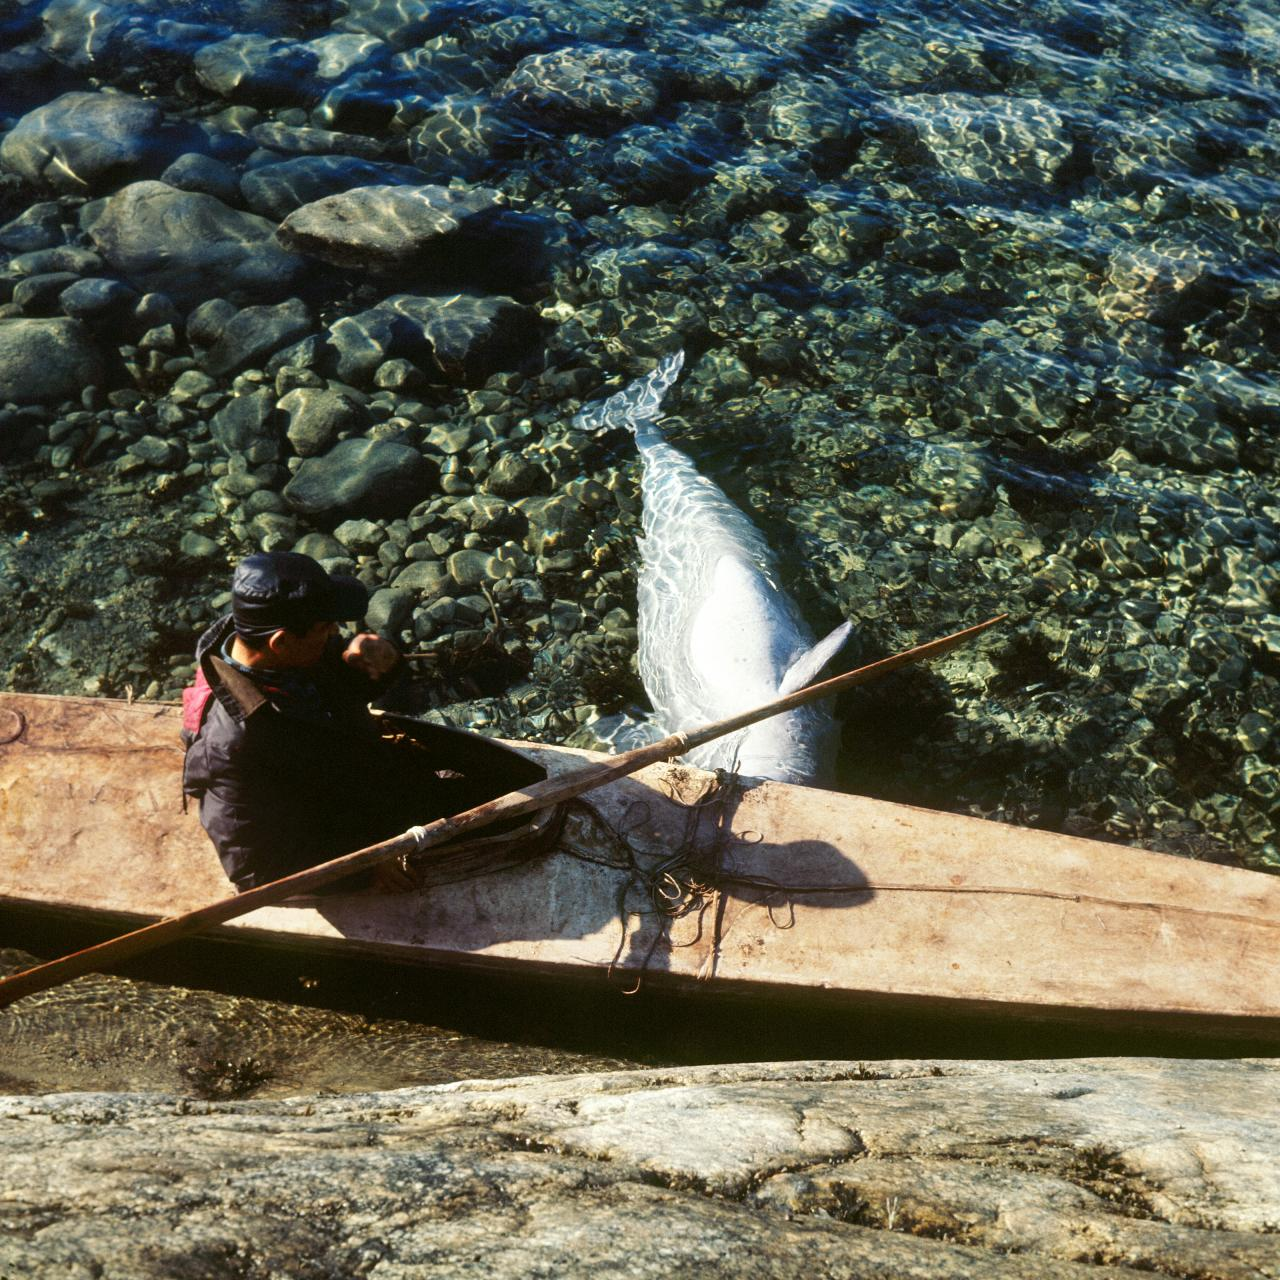 Colour photo which shows a man in a qajaq on the water. The qajaq is moored, and near it is the carcass of a beluga.